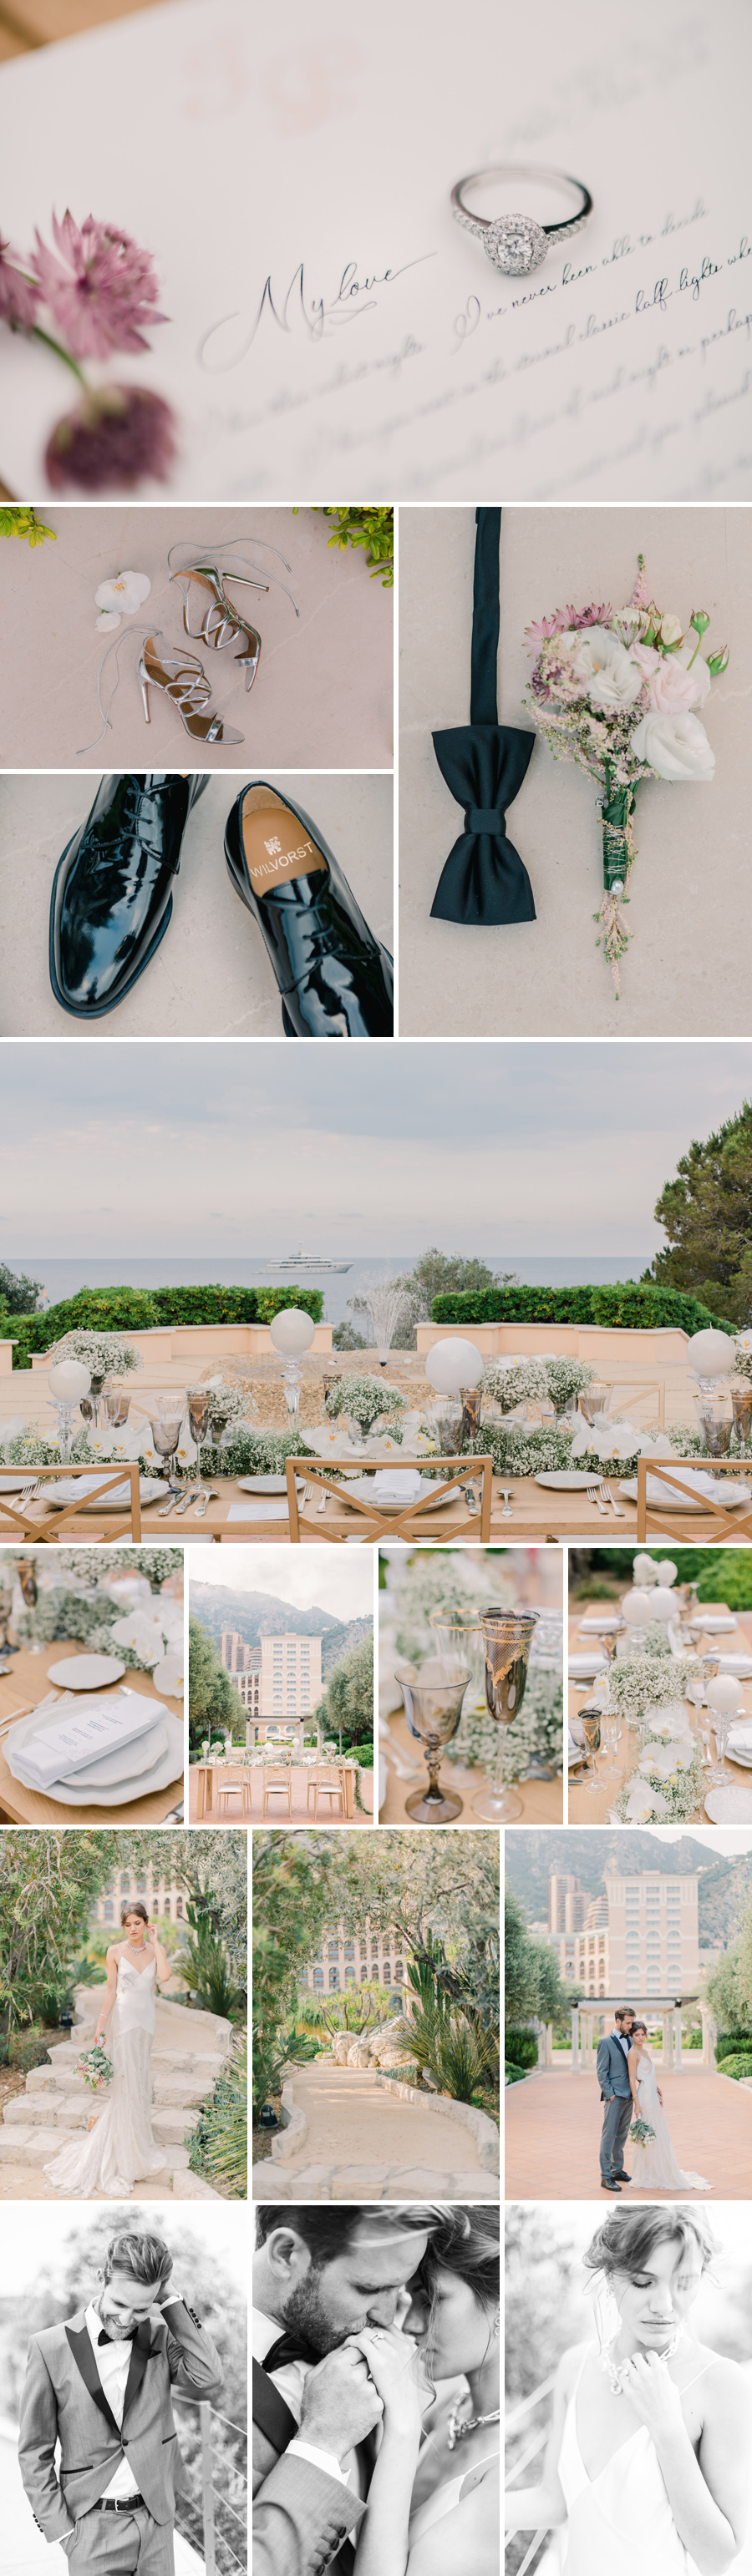 wedding photographer monaco monte carlo bay